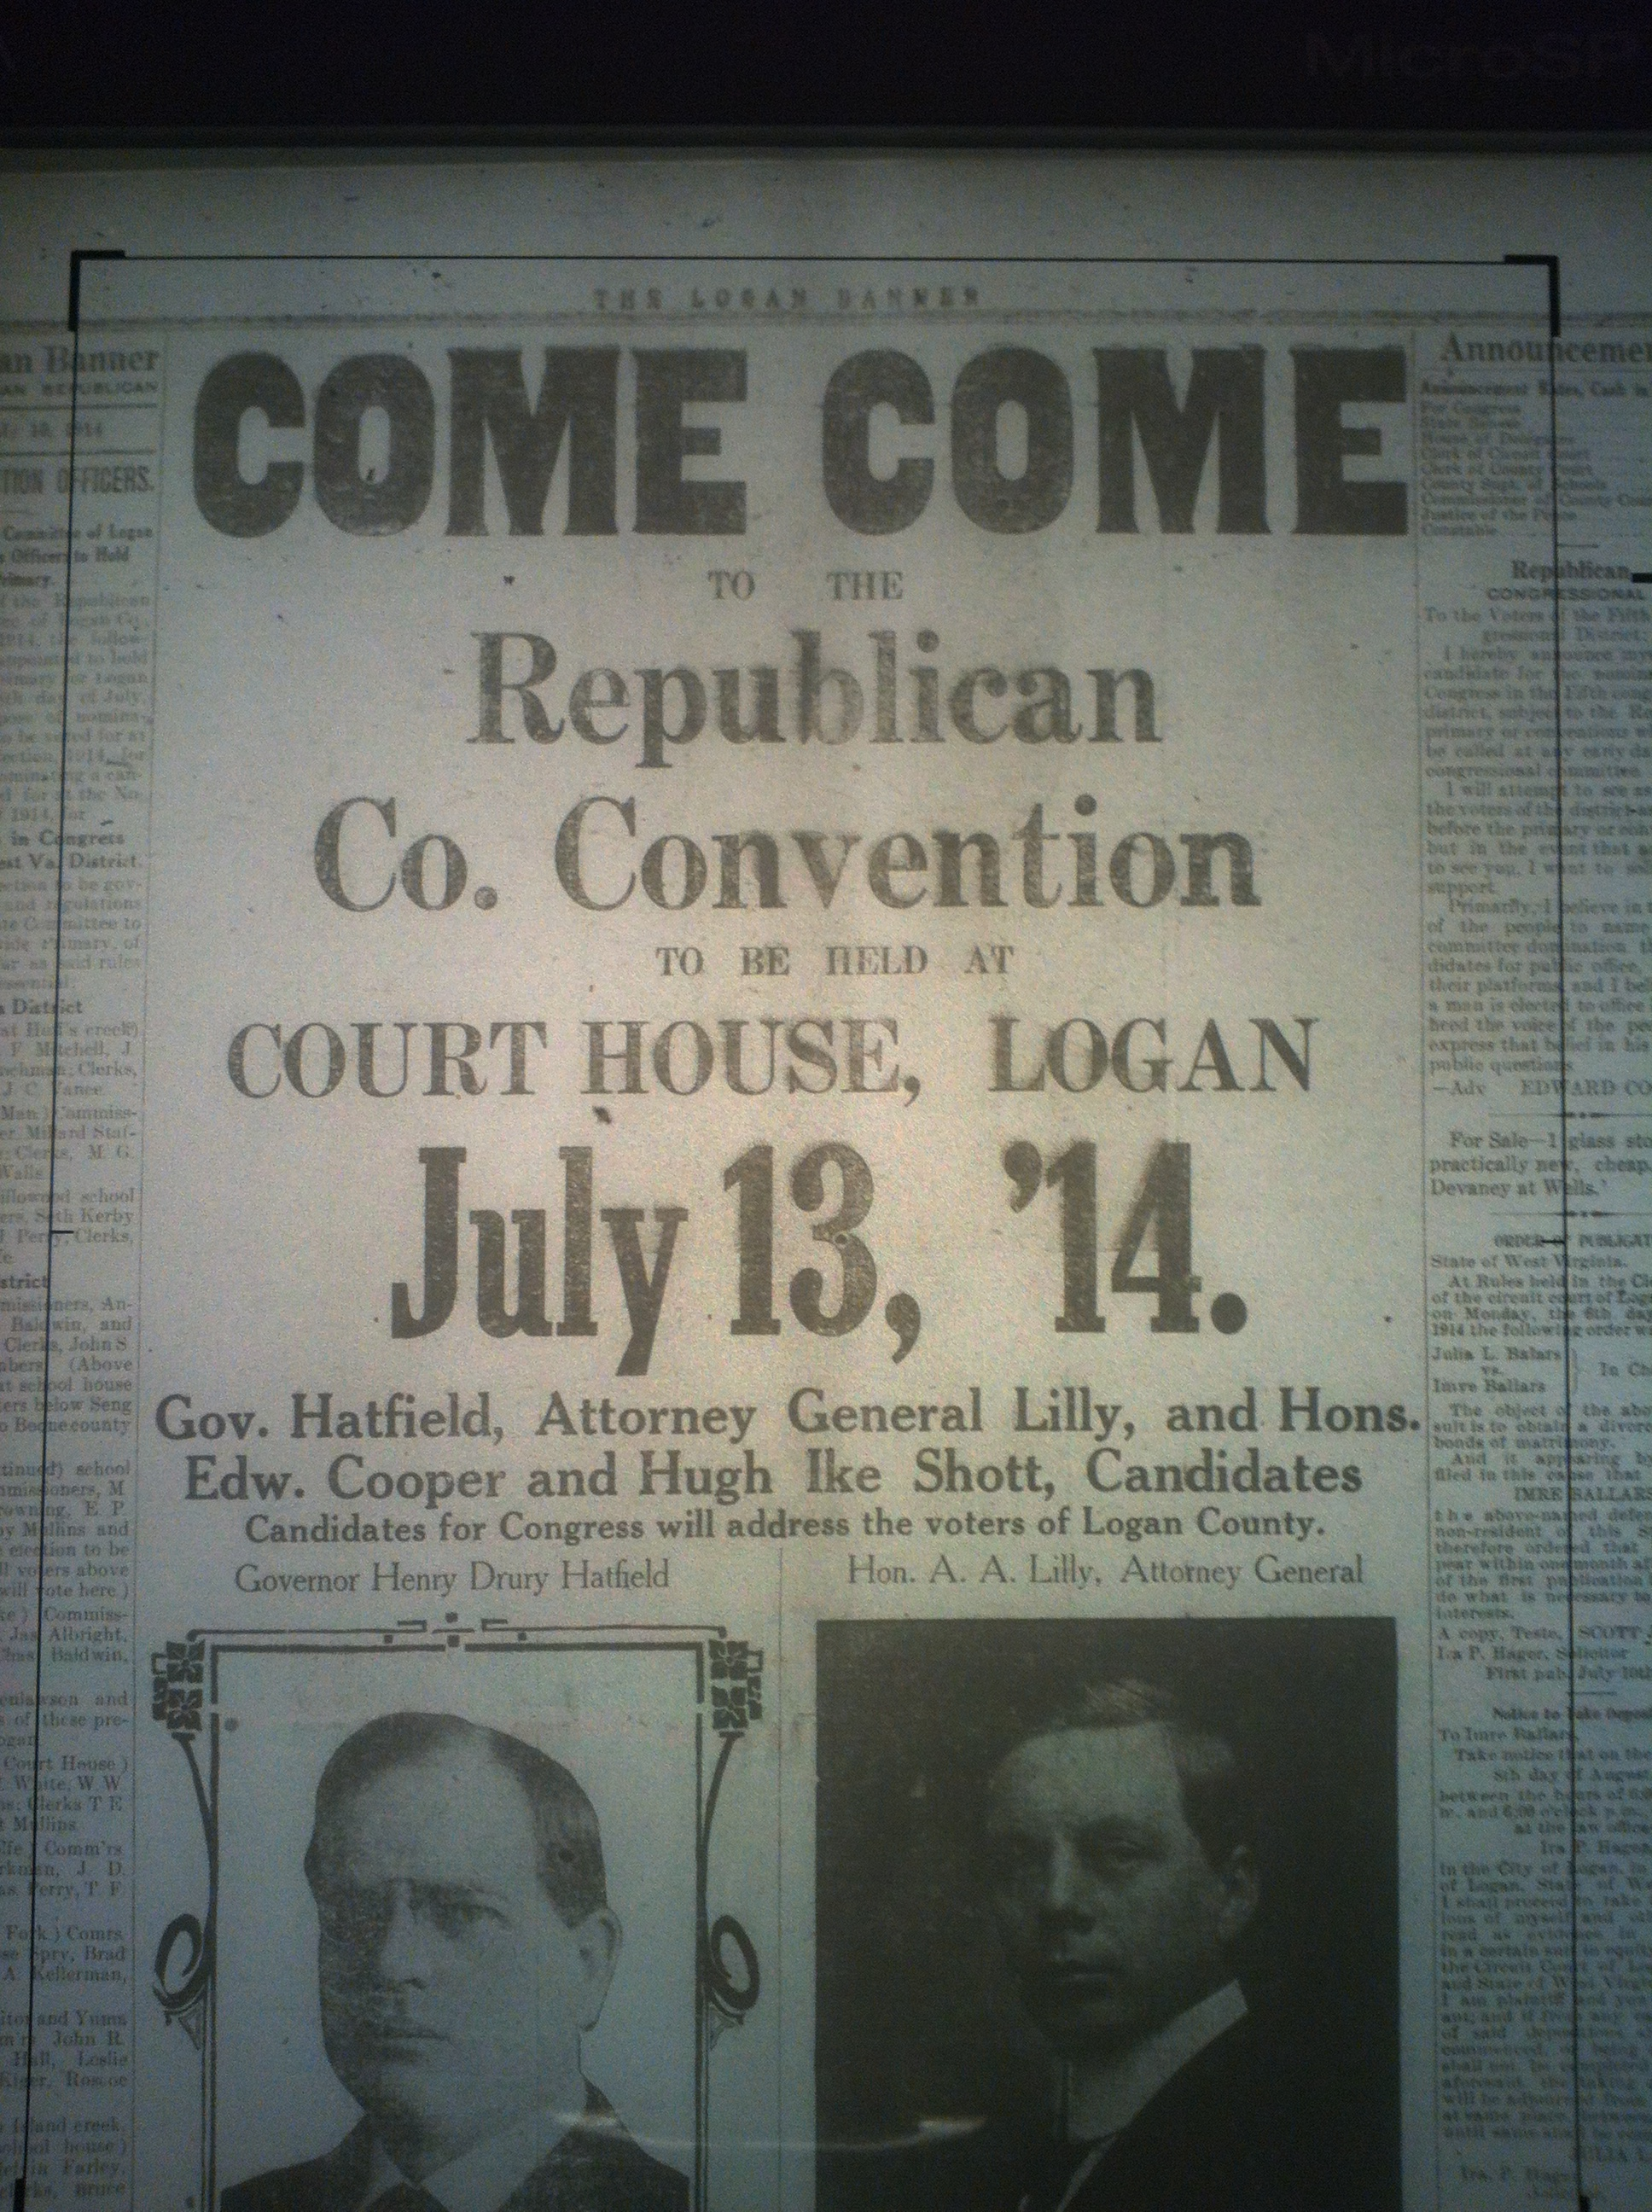 Republican Convention in Logan LB 07.10.1914 1.JPG